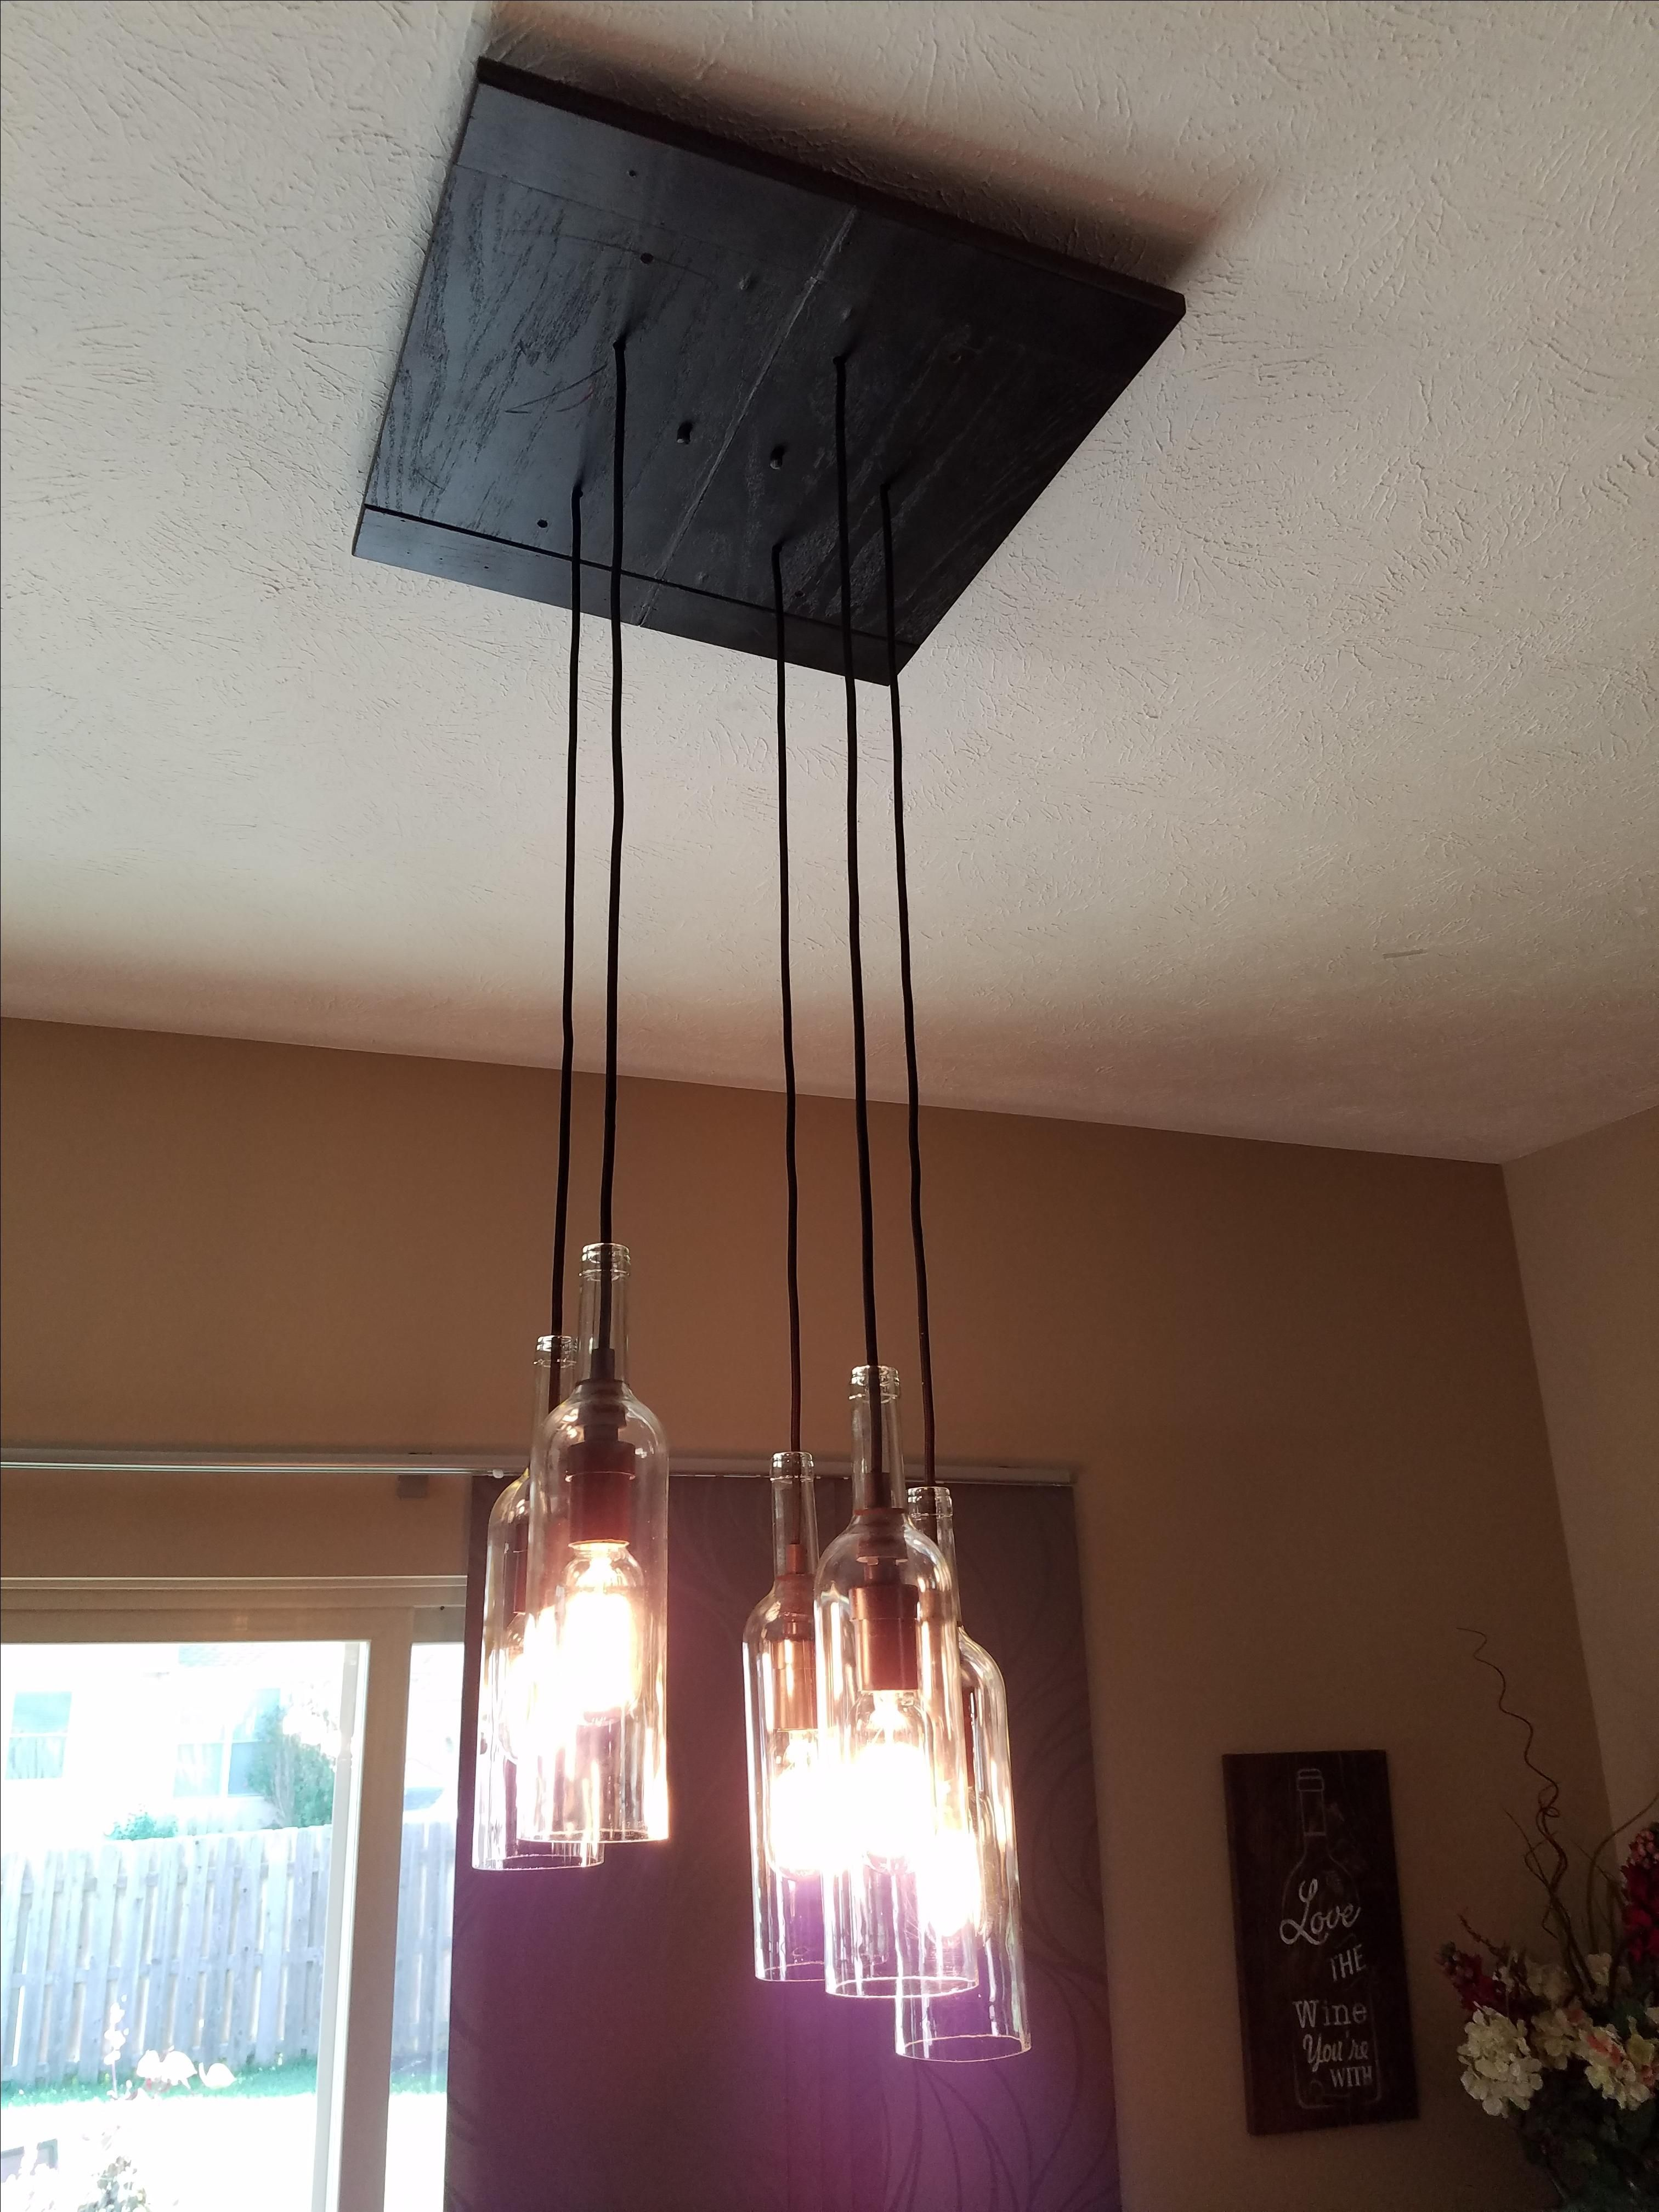 Custom made wine bottle pendant lighting fixtures